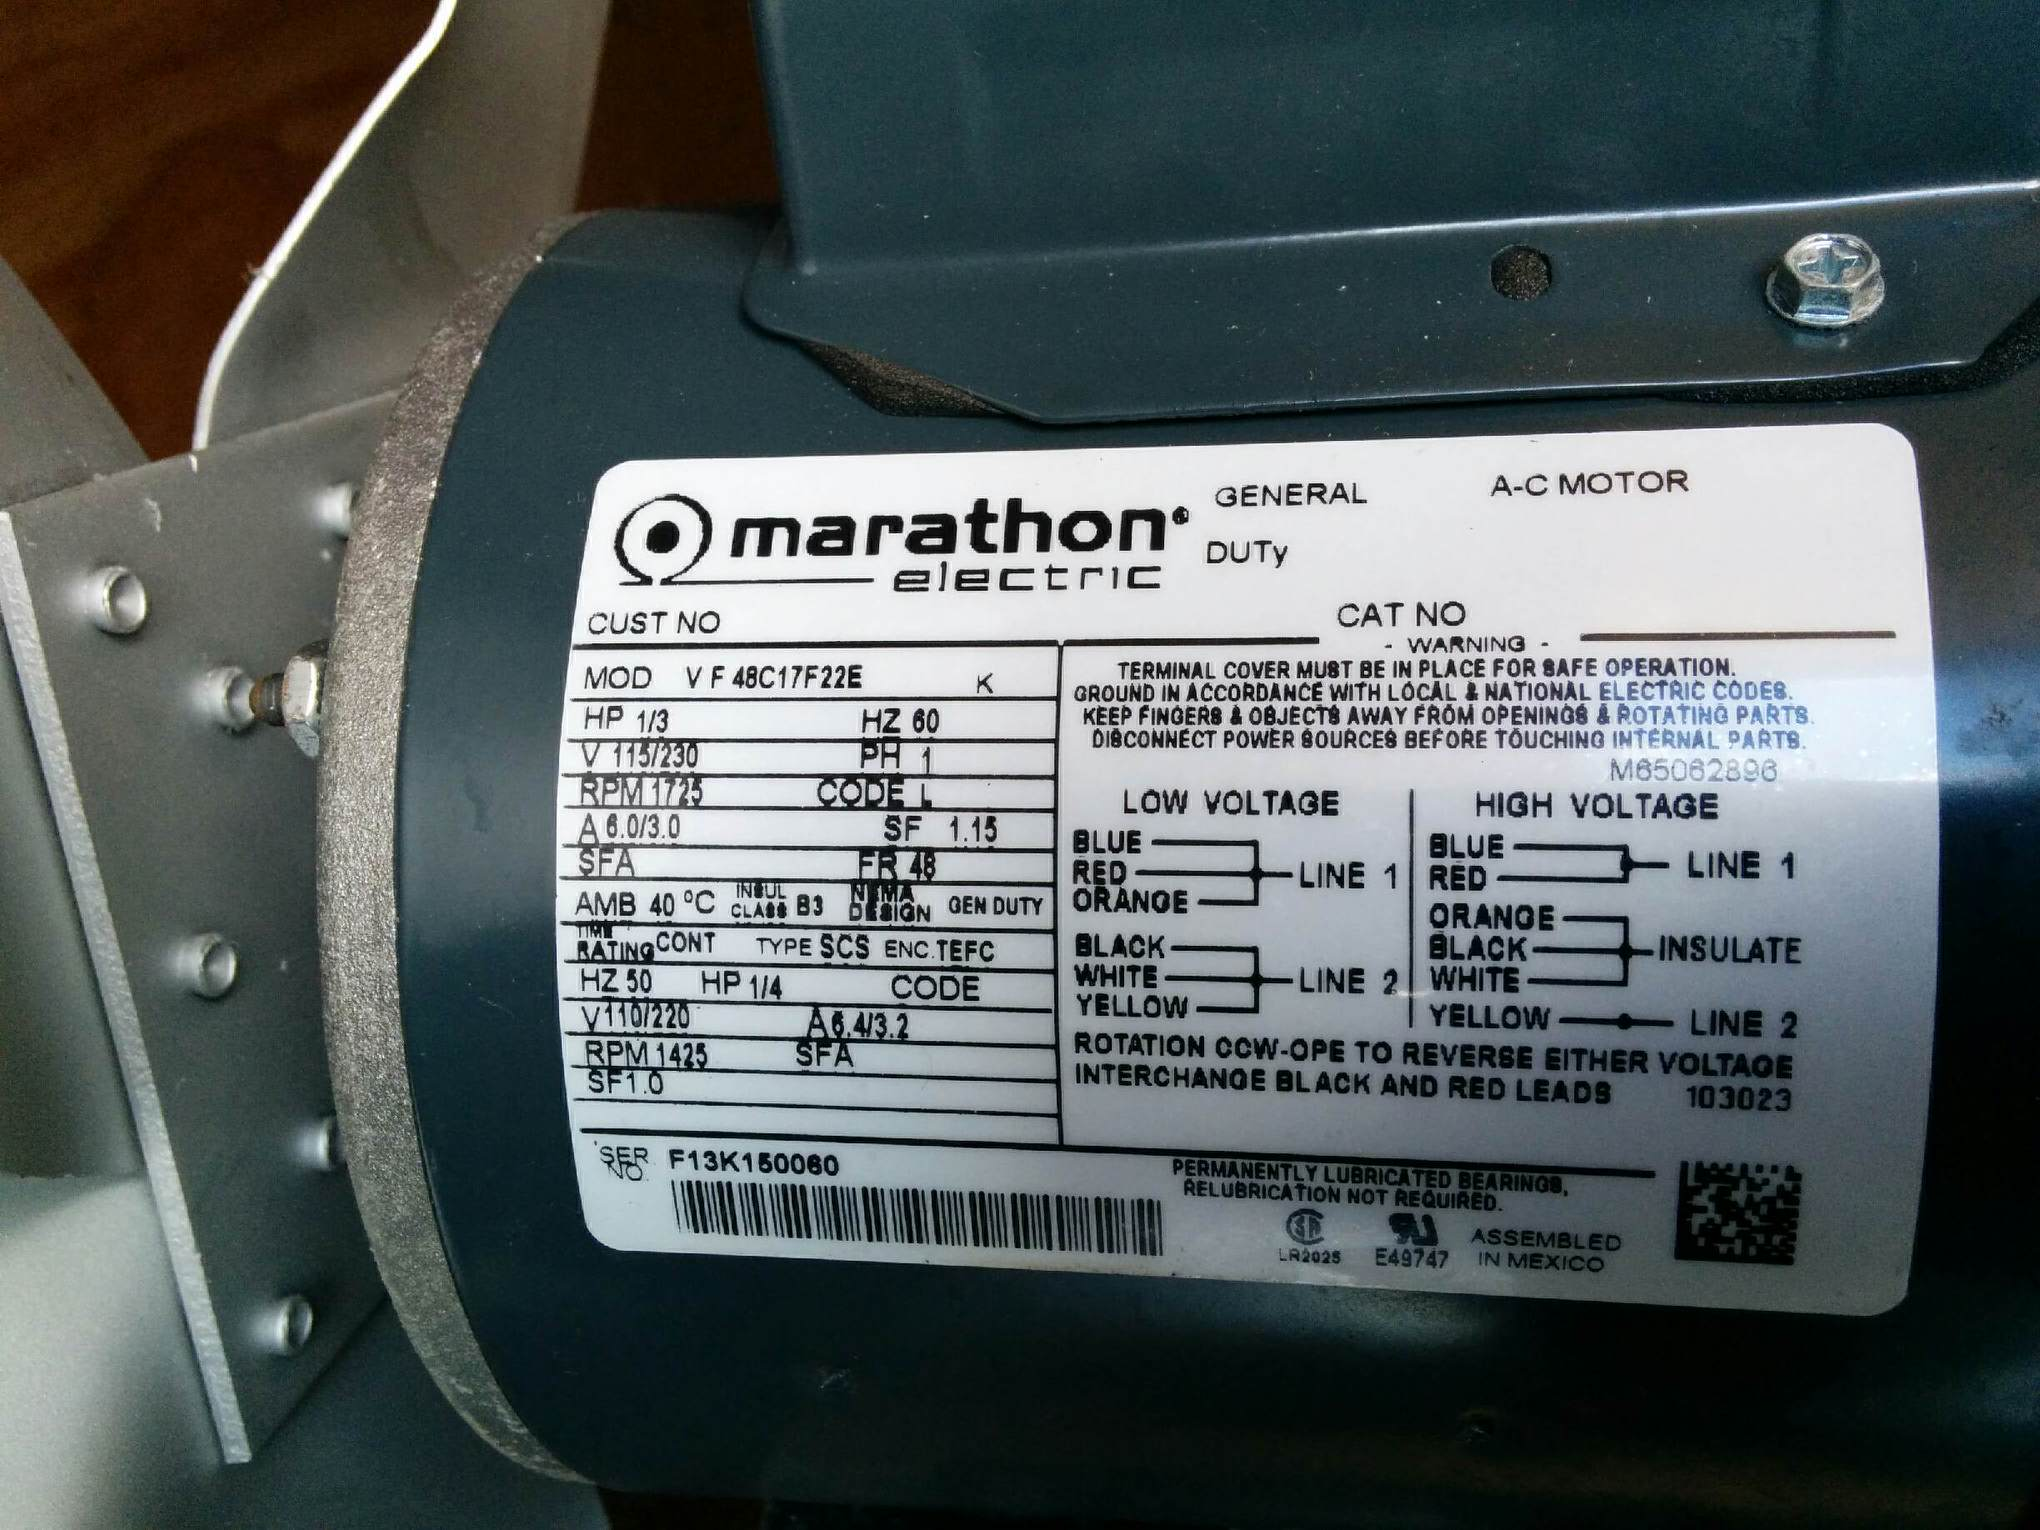 I have a Marathon    Electric       motor     13 HP  Im trying to understand